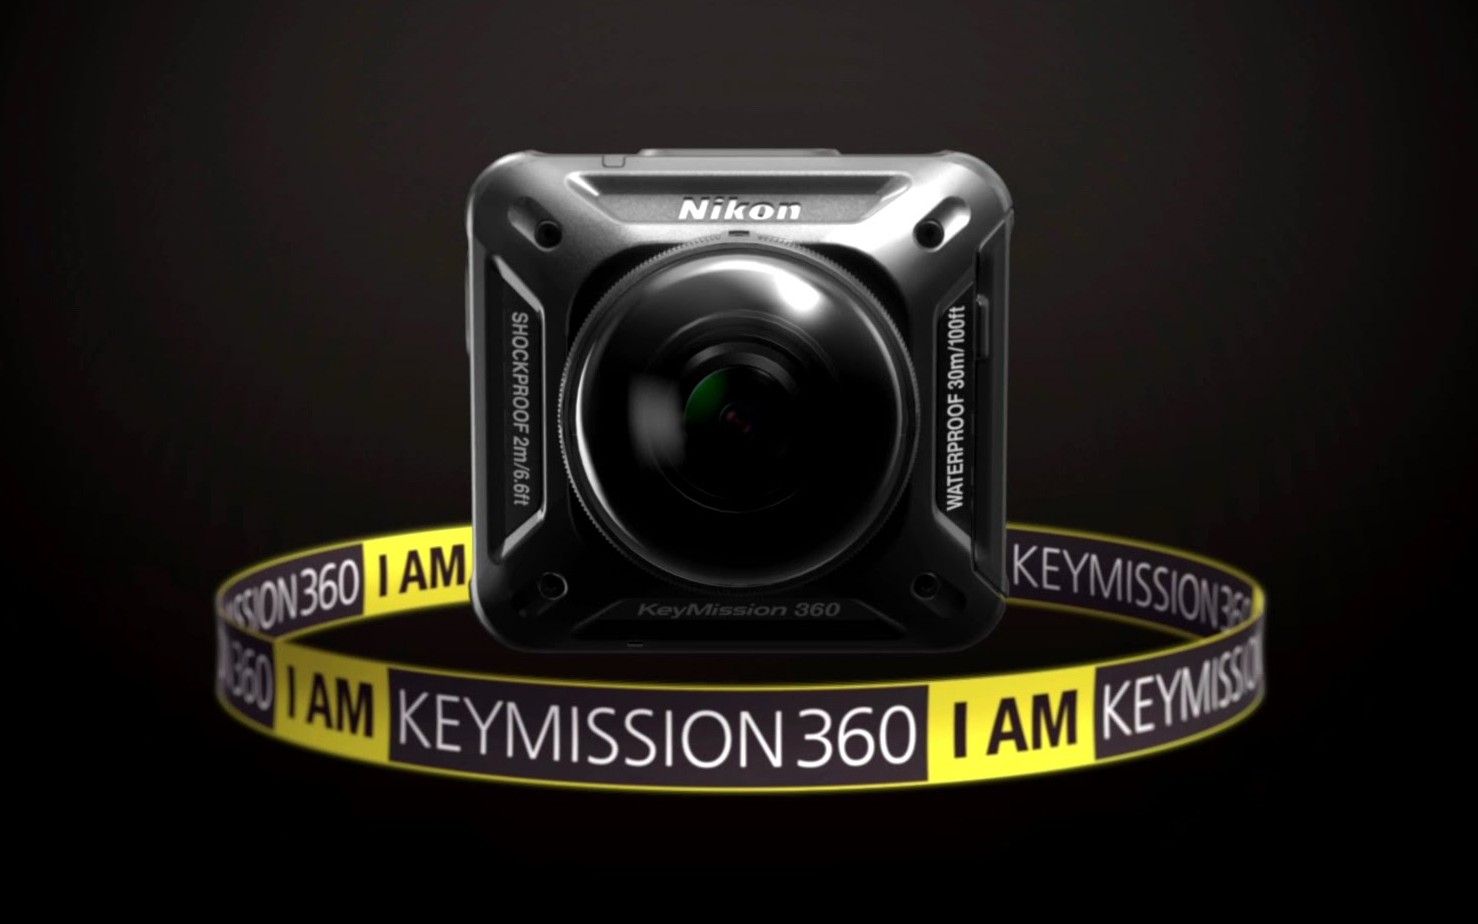 CAPTURE EVERY SMARTKAT TRIP WITH THE NEW NIKON 360 CAMERA.